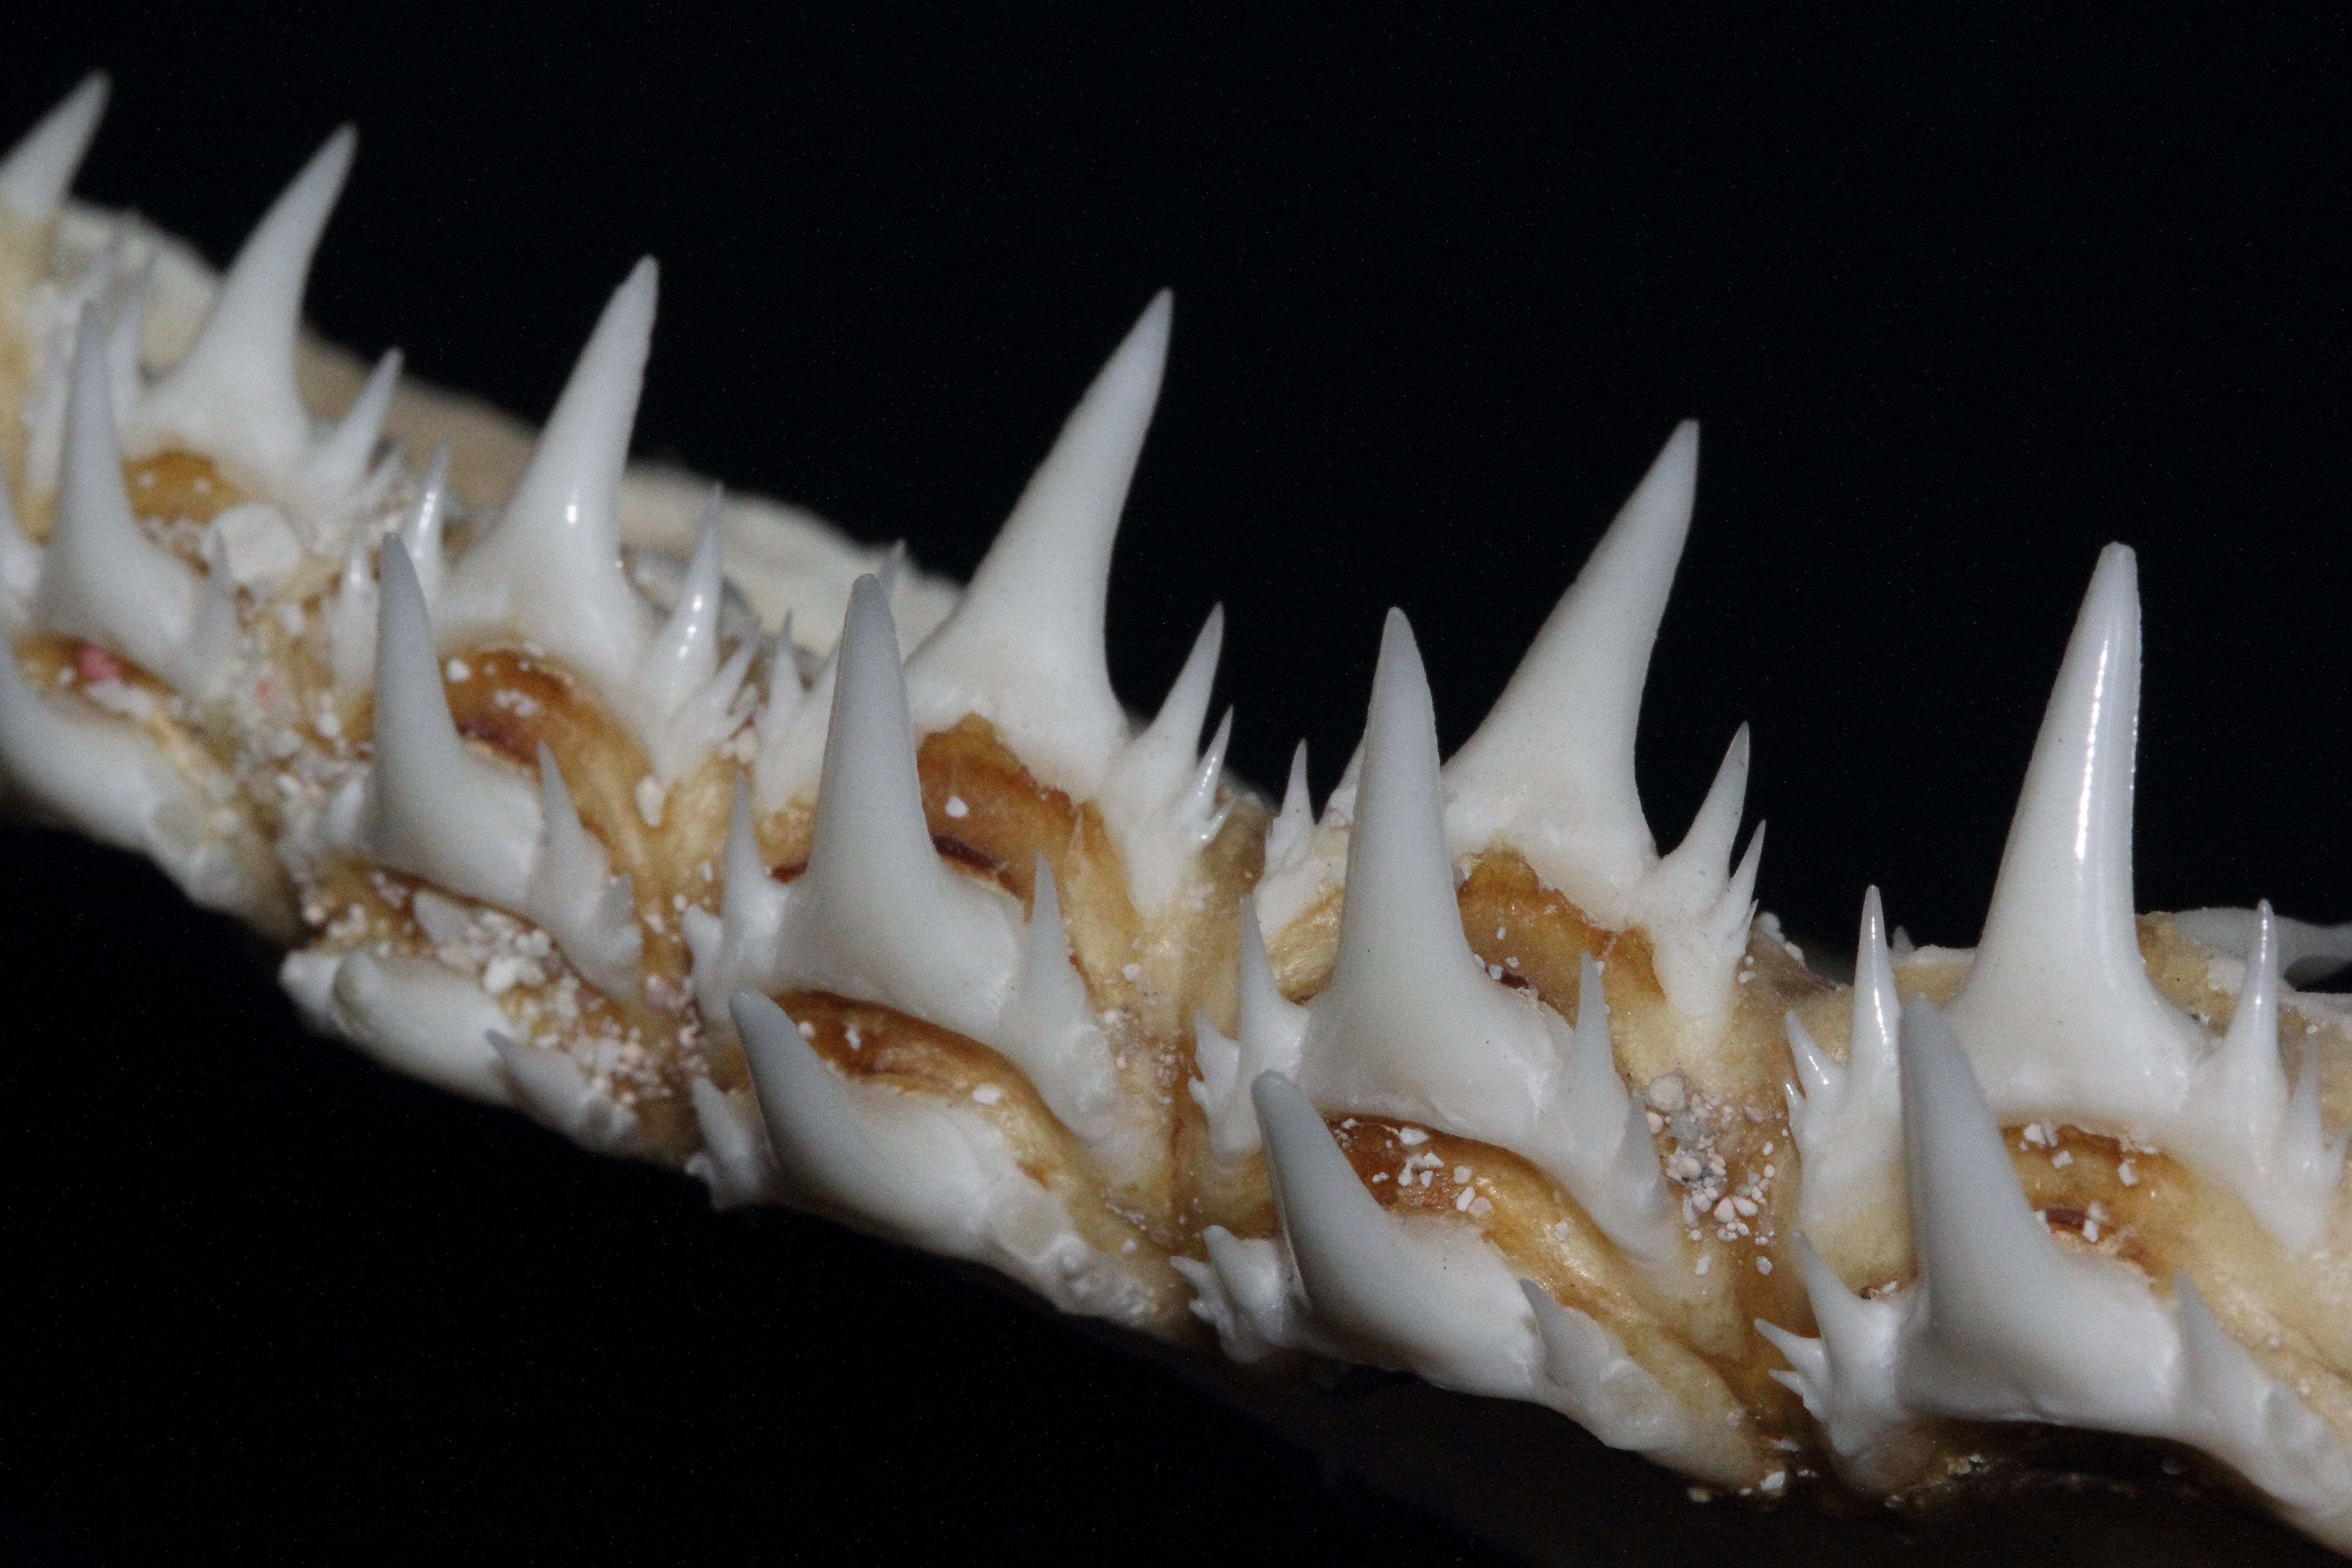 Nurse shark teeth - photo#14